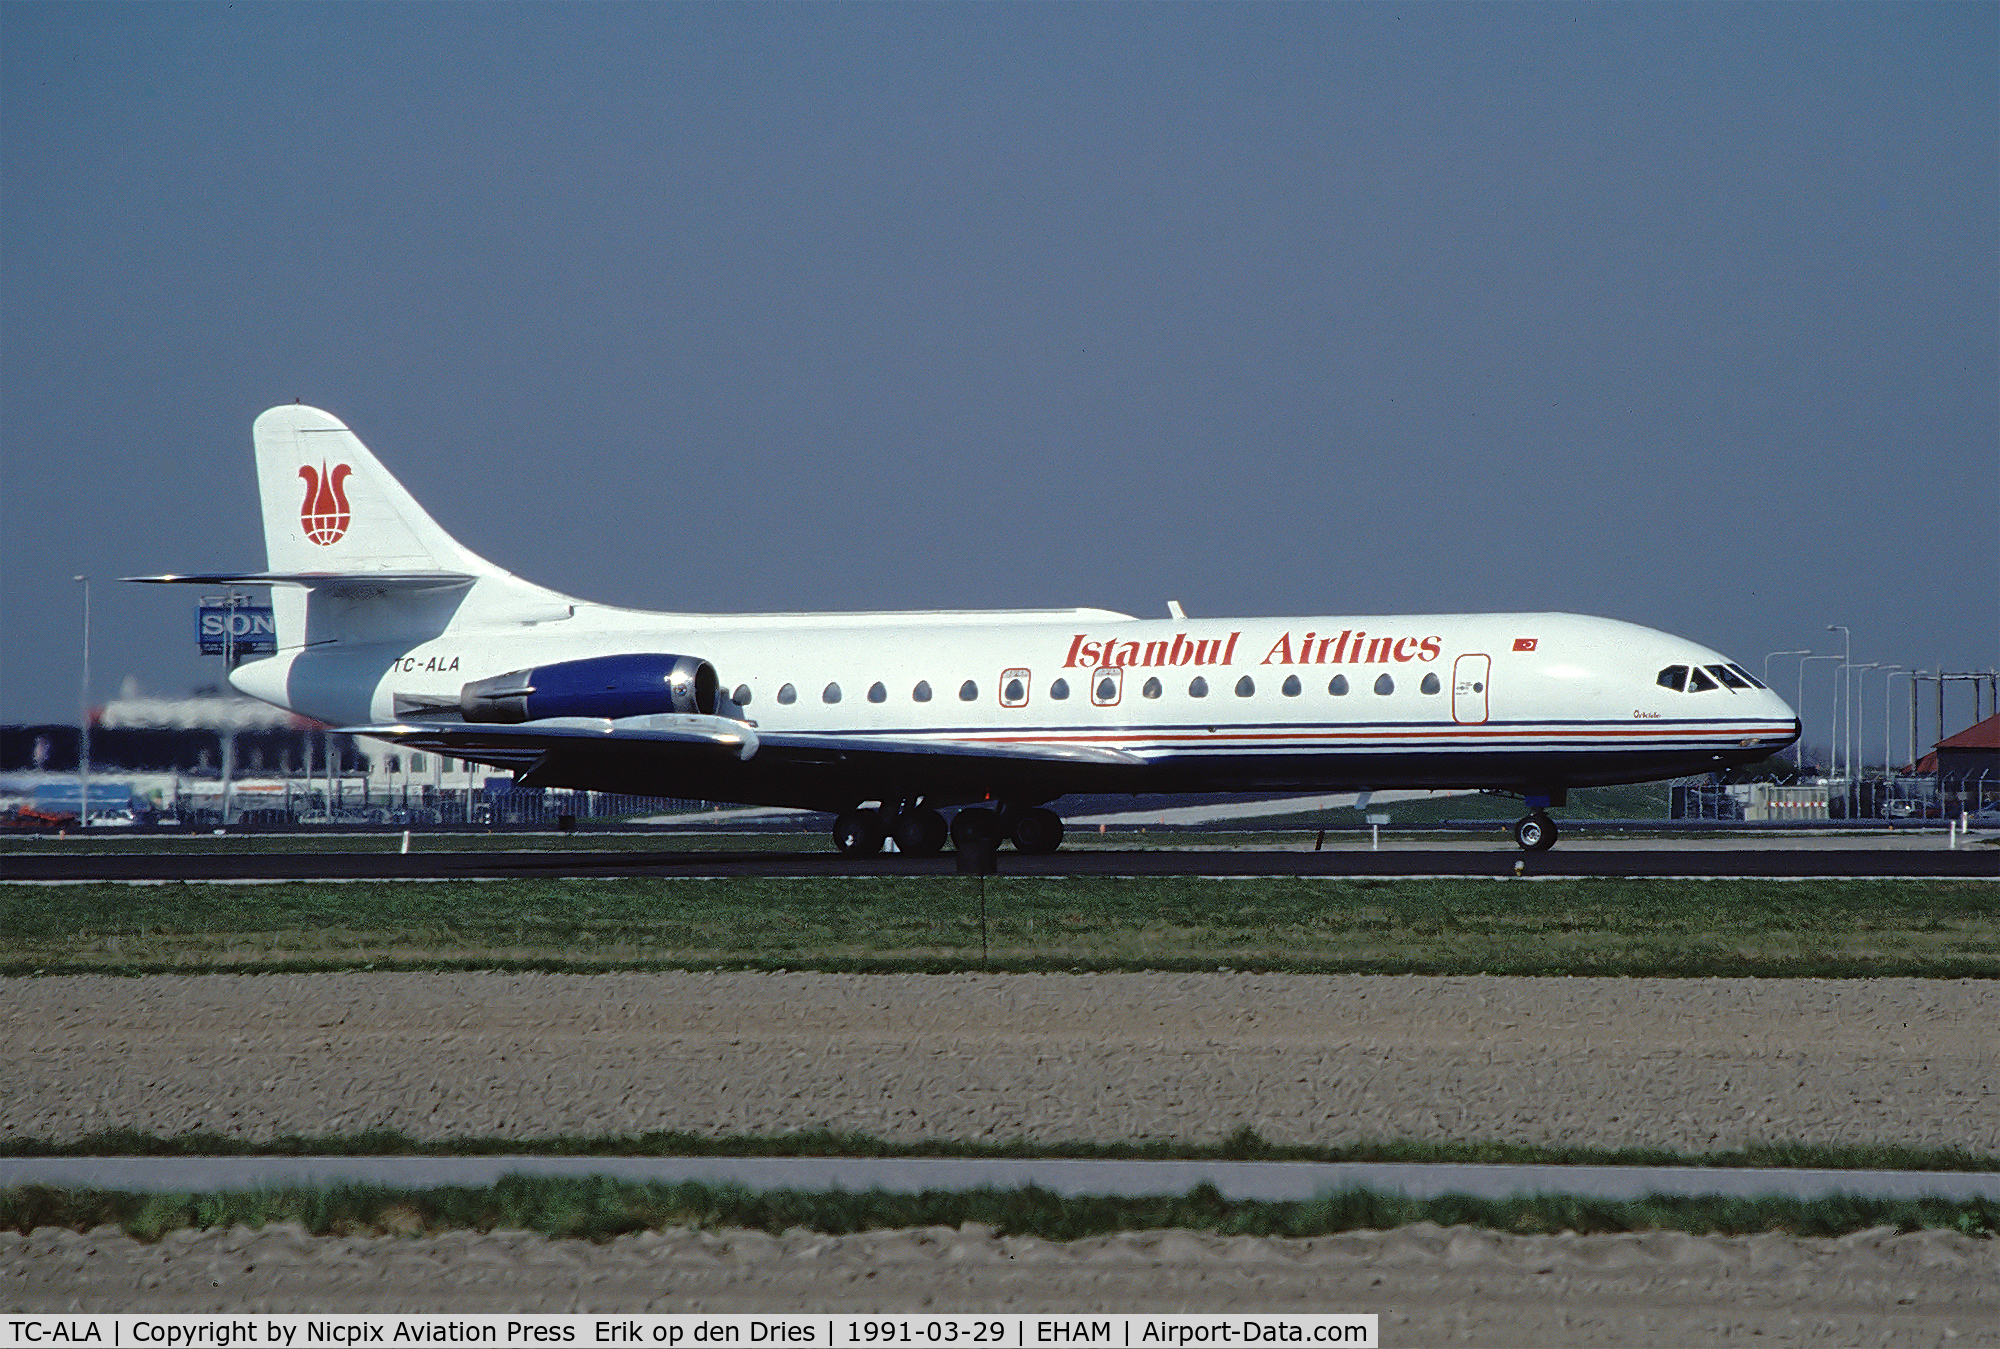 TC-ALA, 1969 Sud Aviation SE-210 Caravelle 10R C/N 250, Istanbul Airlines Caravelle 10B1R on the runway of Schiphol Apt.